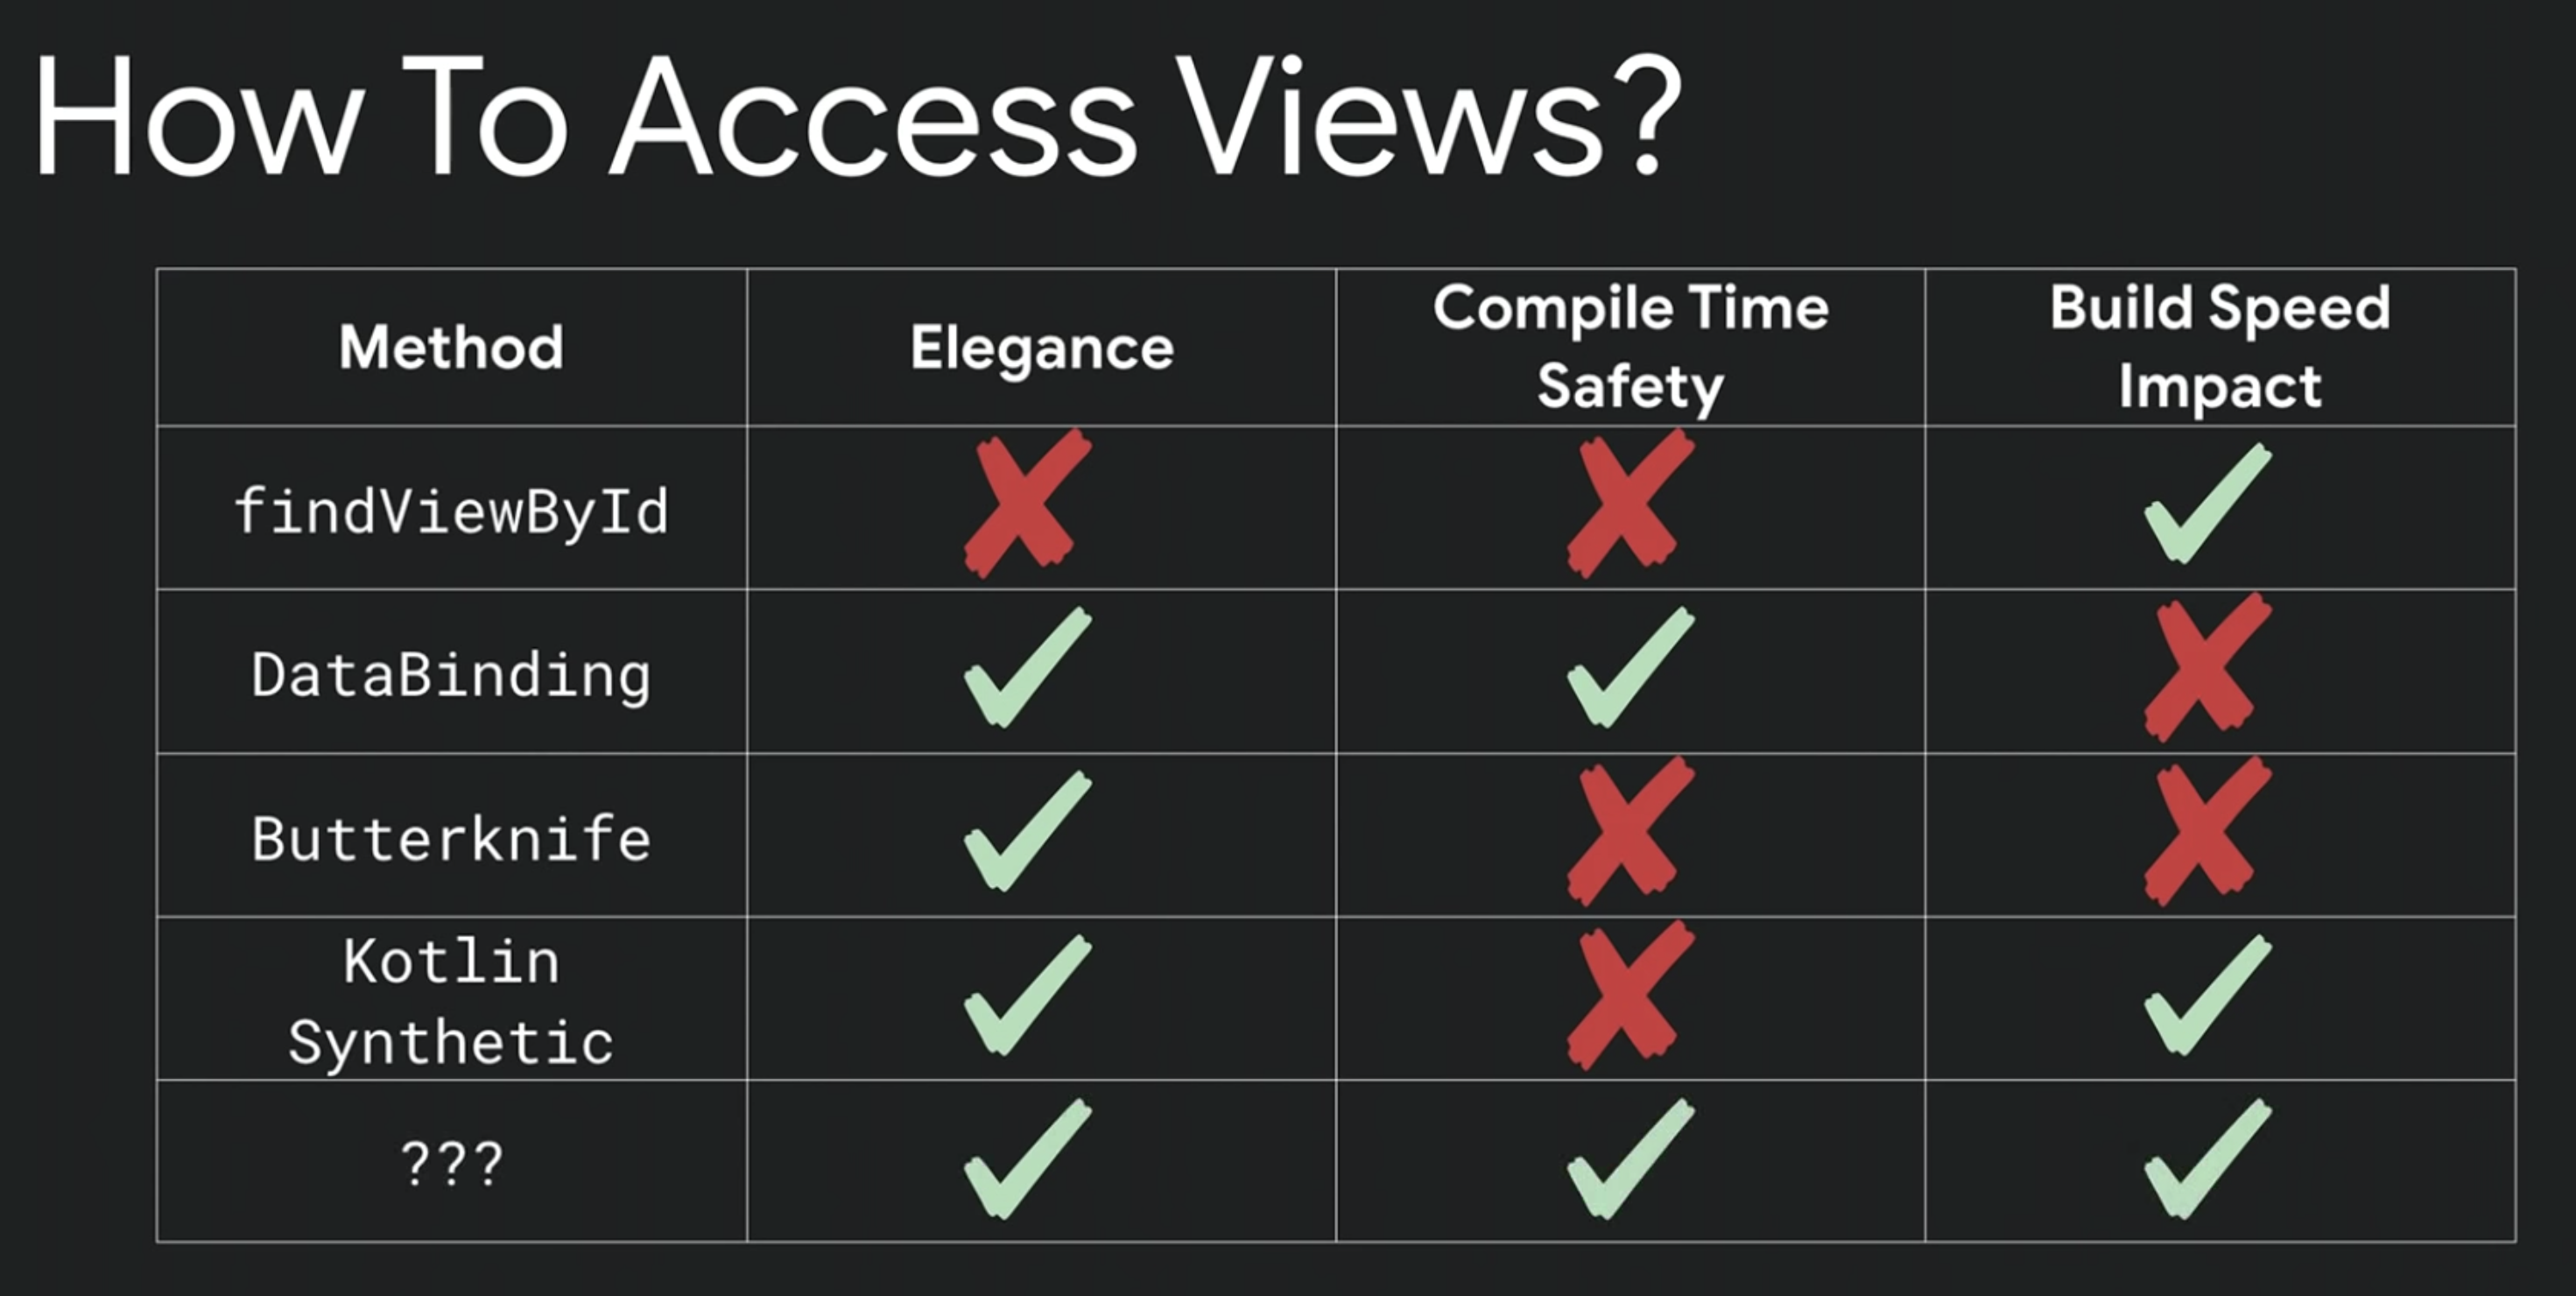 view-access-ways.png